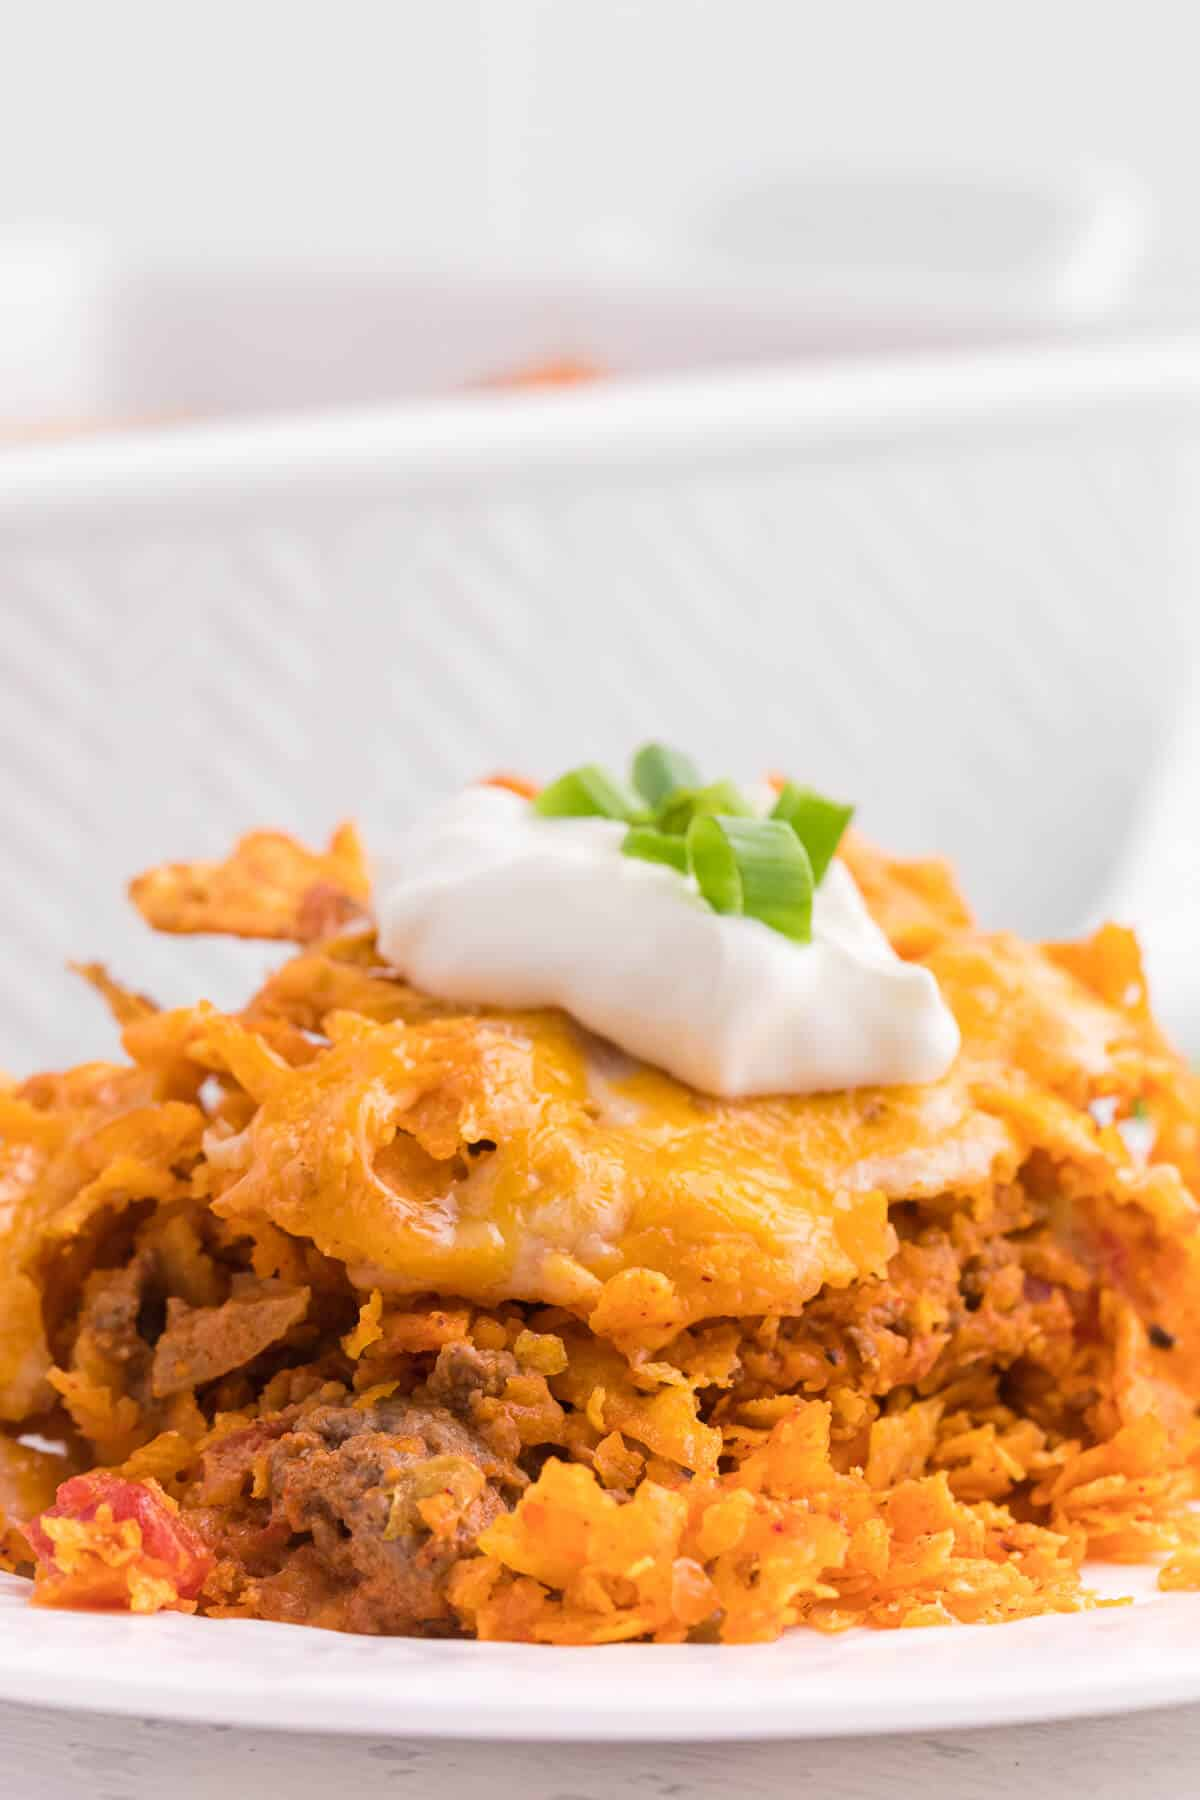 Doritos Casserole Recipe - Take Mexican night to a whole new level with this easy taco bake recipe. Made with ground beef, sour cream, spices and loads of cheese, it's zesty with hearty Tex Mex flavor. A yummy dinner recipe your family will love!